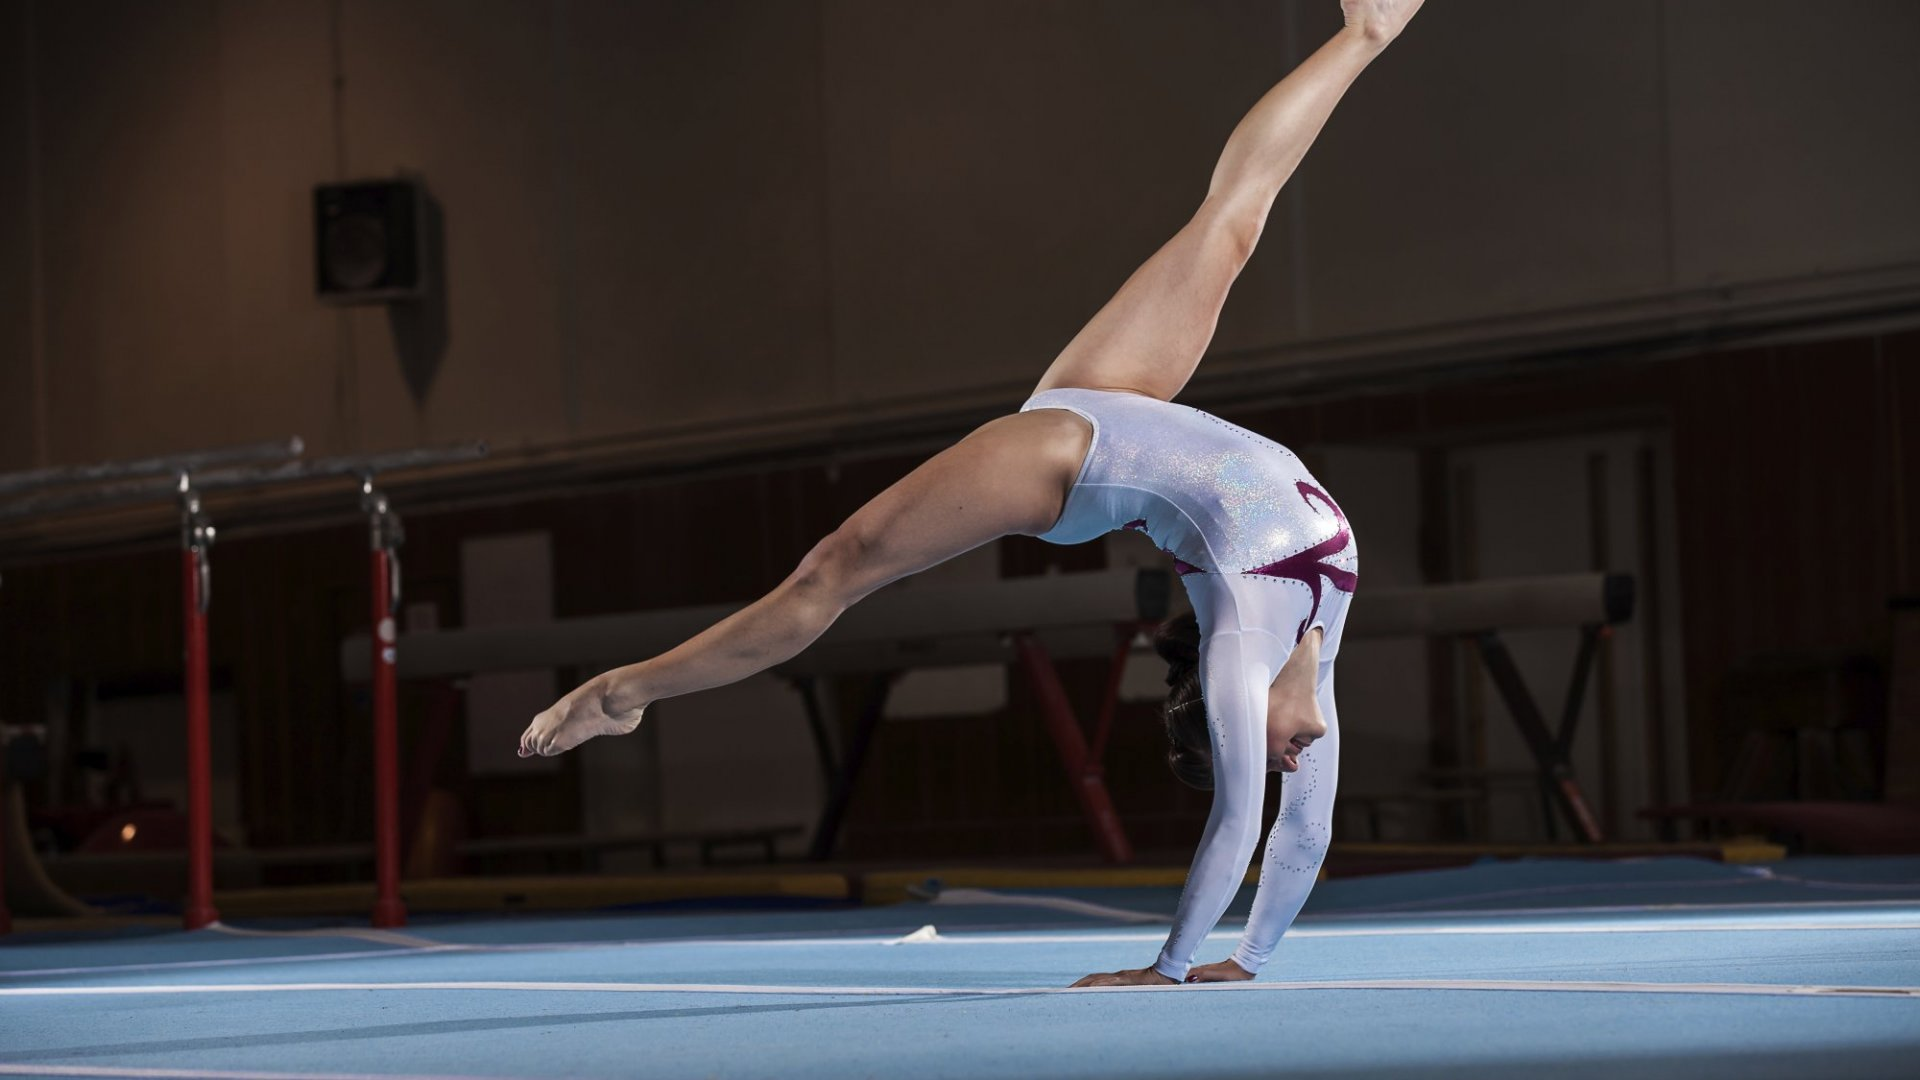 This Gymnast's Ridiculously Innovative Routine Lured More Than 7 Million Views on YouTube